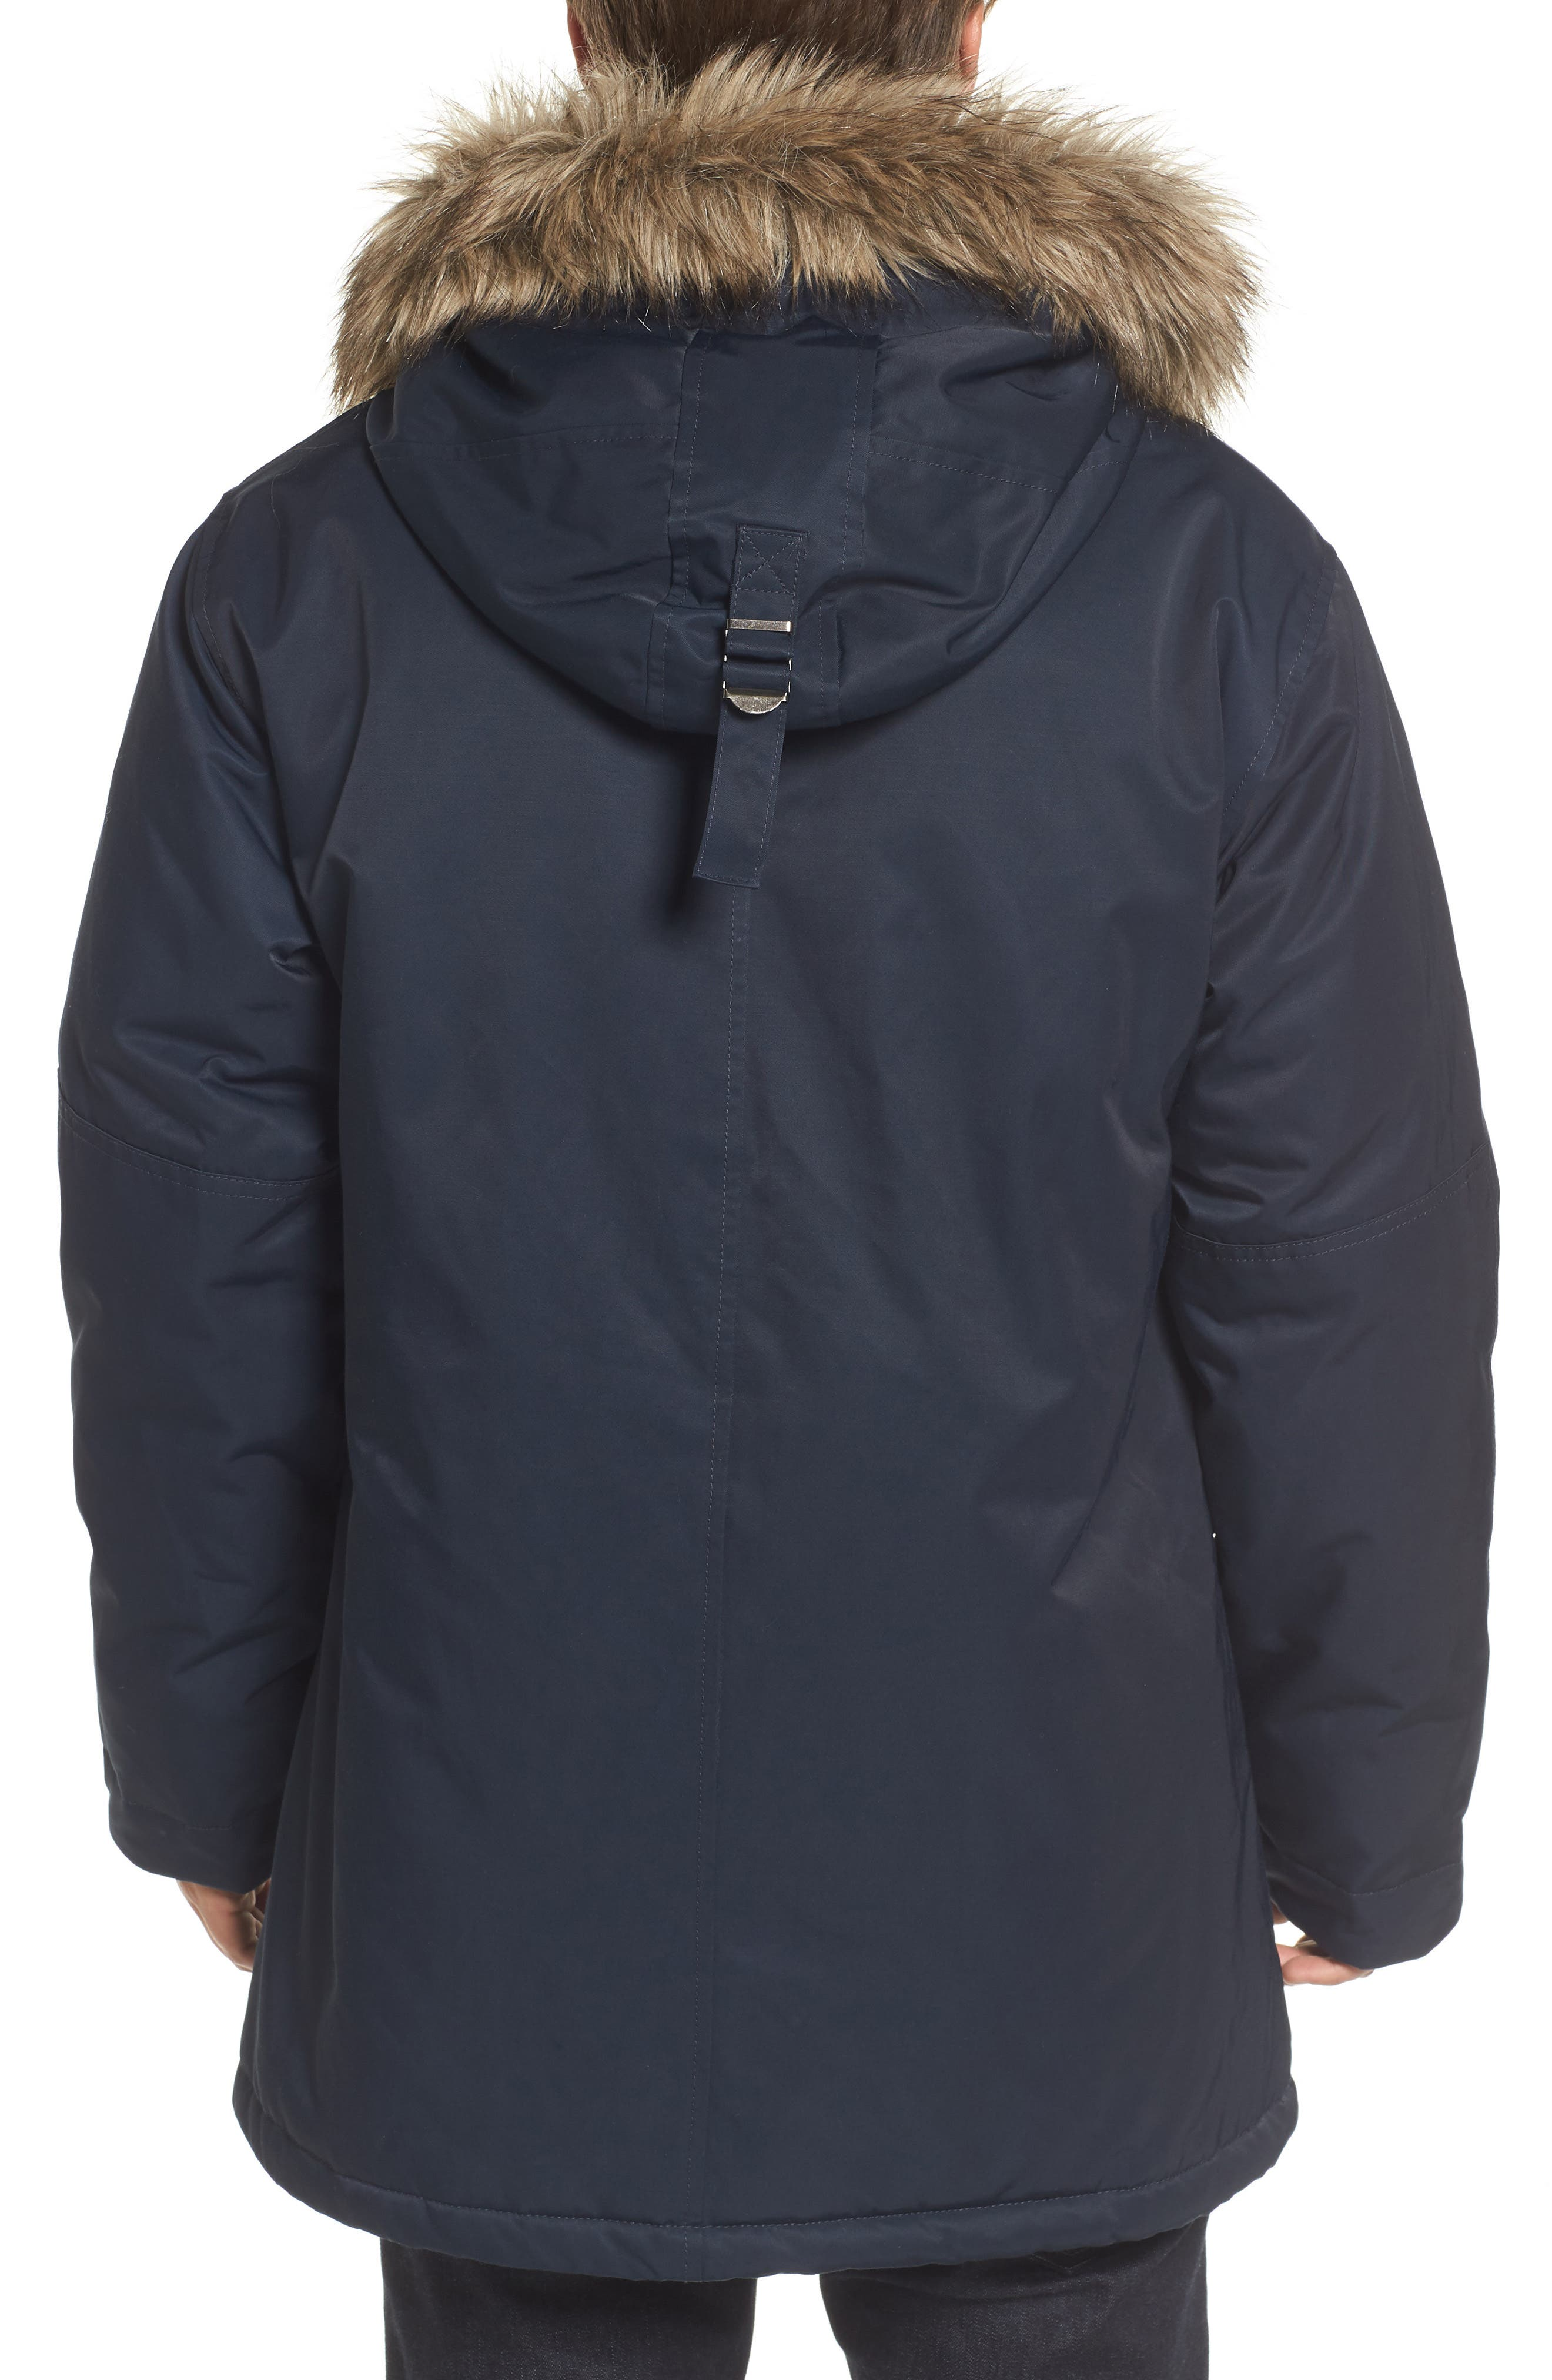 Bystander Hooded Parka with Faux Fur Trim,                             Alternate thumbnail 2, color,                             Marine Blue